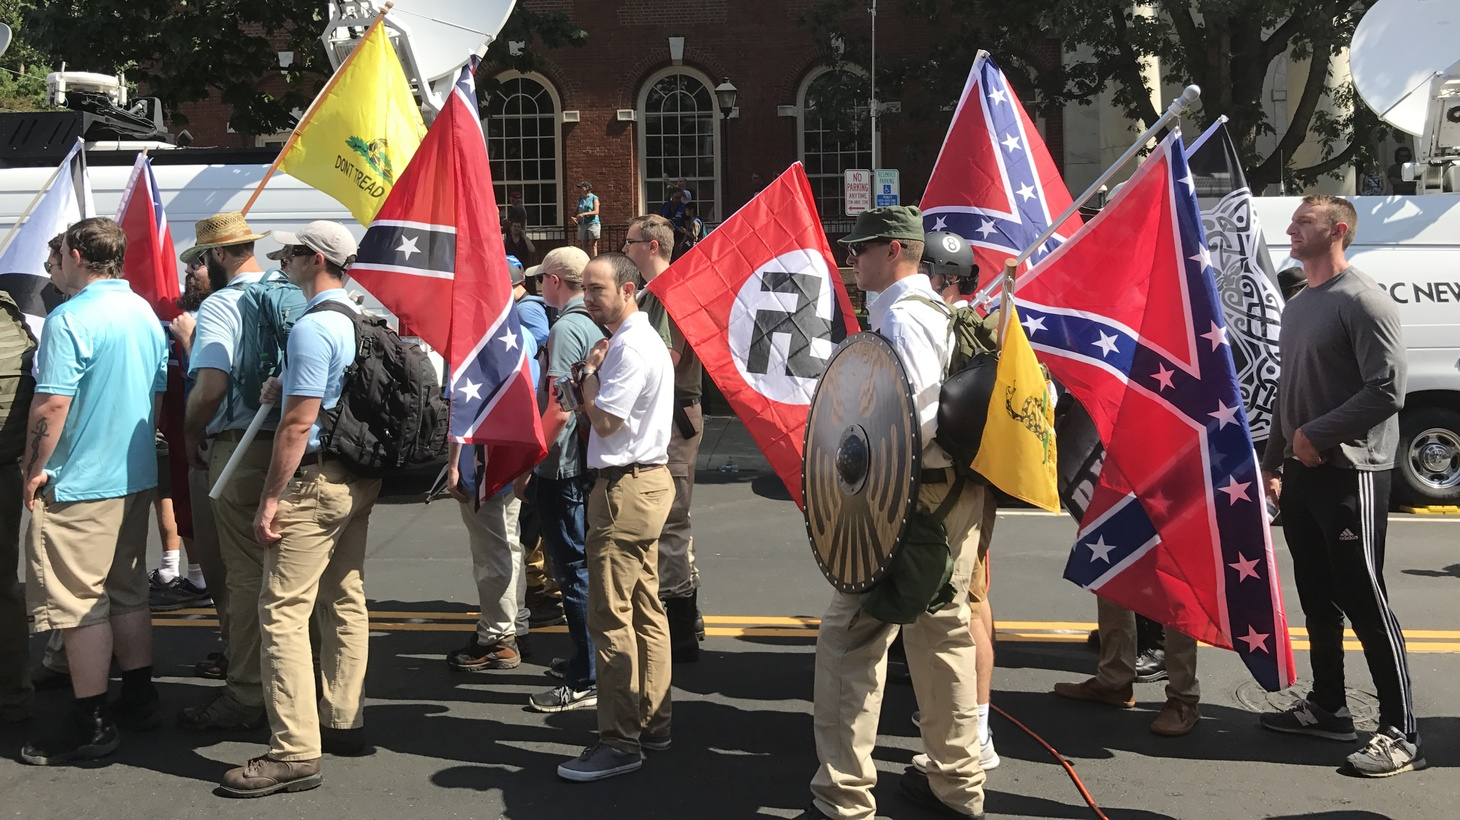 """Alt-right members preparing to enter Emancipation Park holding Nazi, Confederate, and Gadsden """"Don't Tread on Me"""" flags, August 2017."""